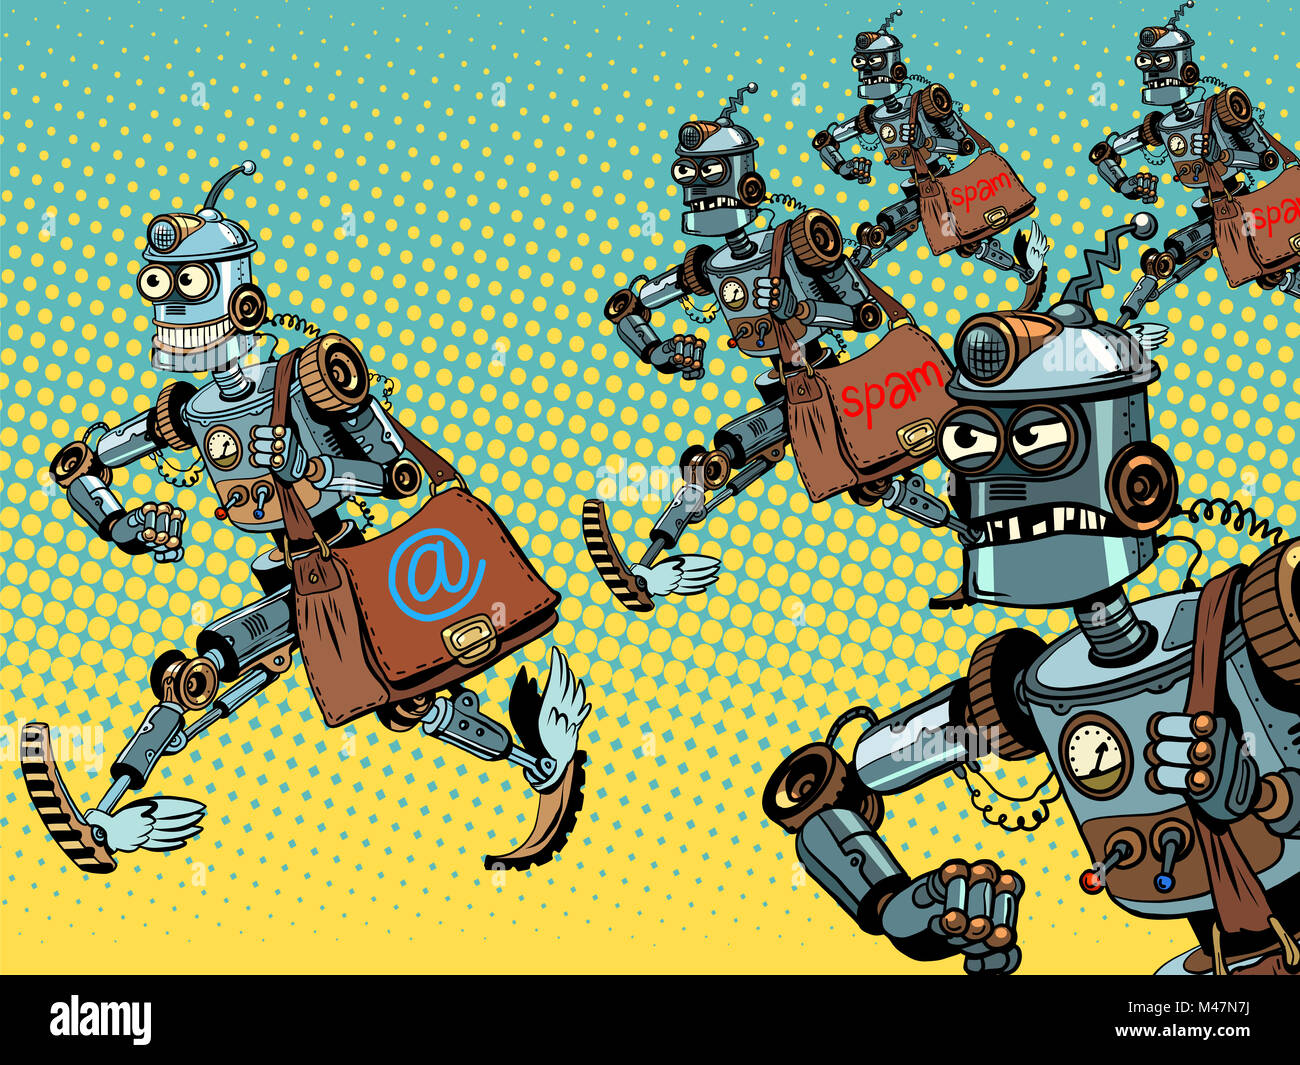 Mailman Robot campagnes e-mail Photo Stock